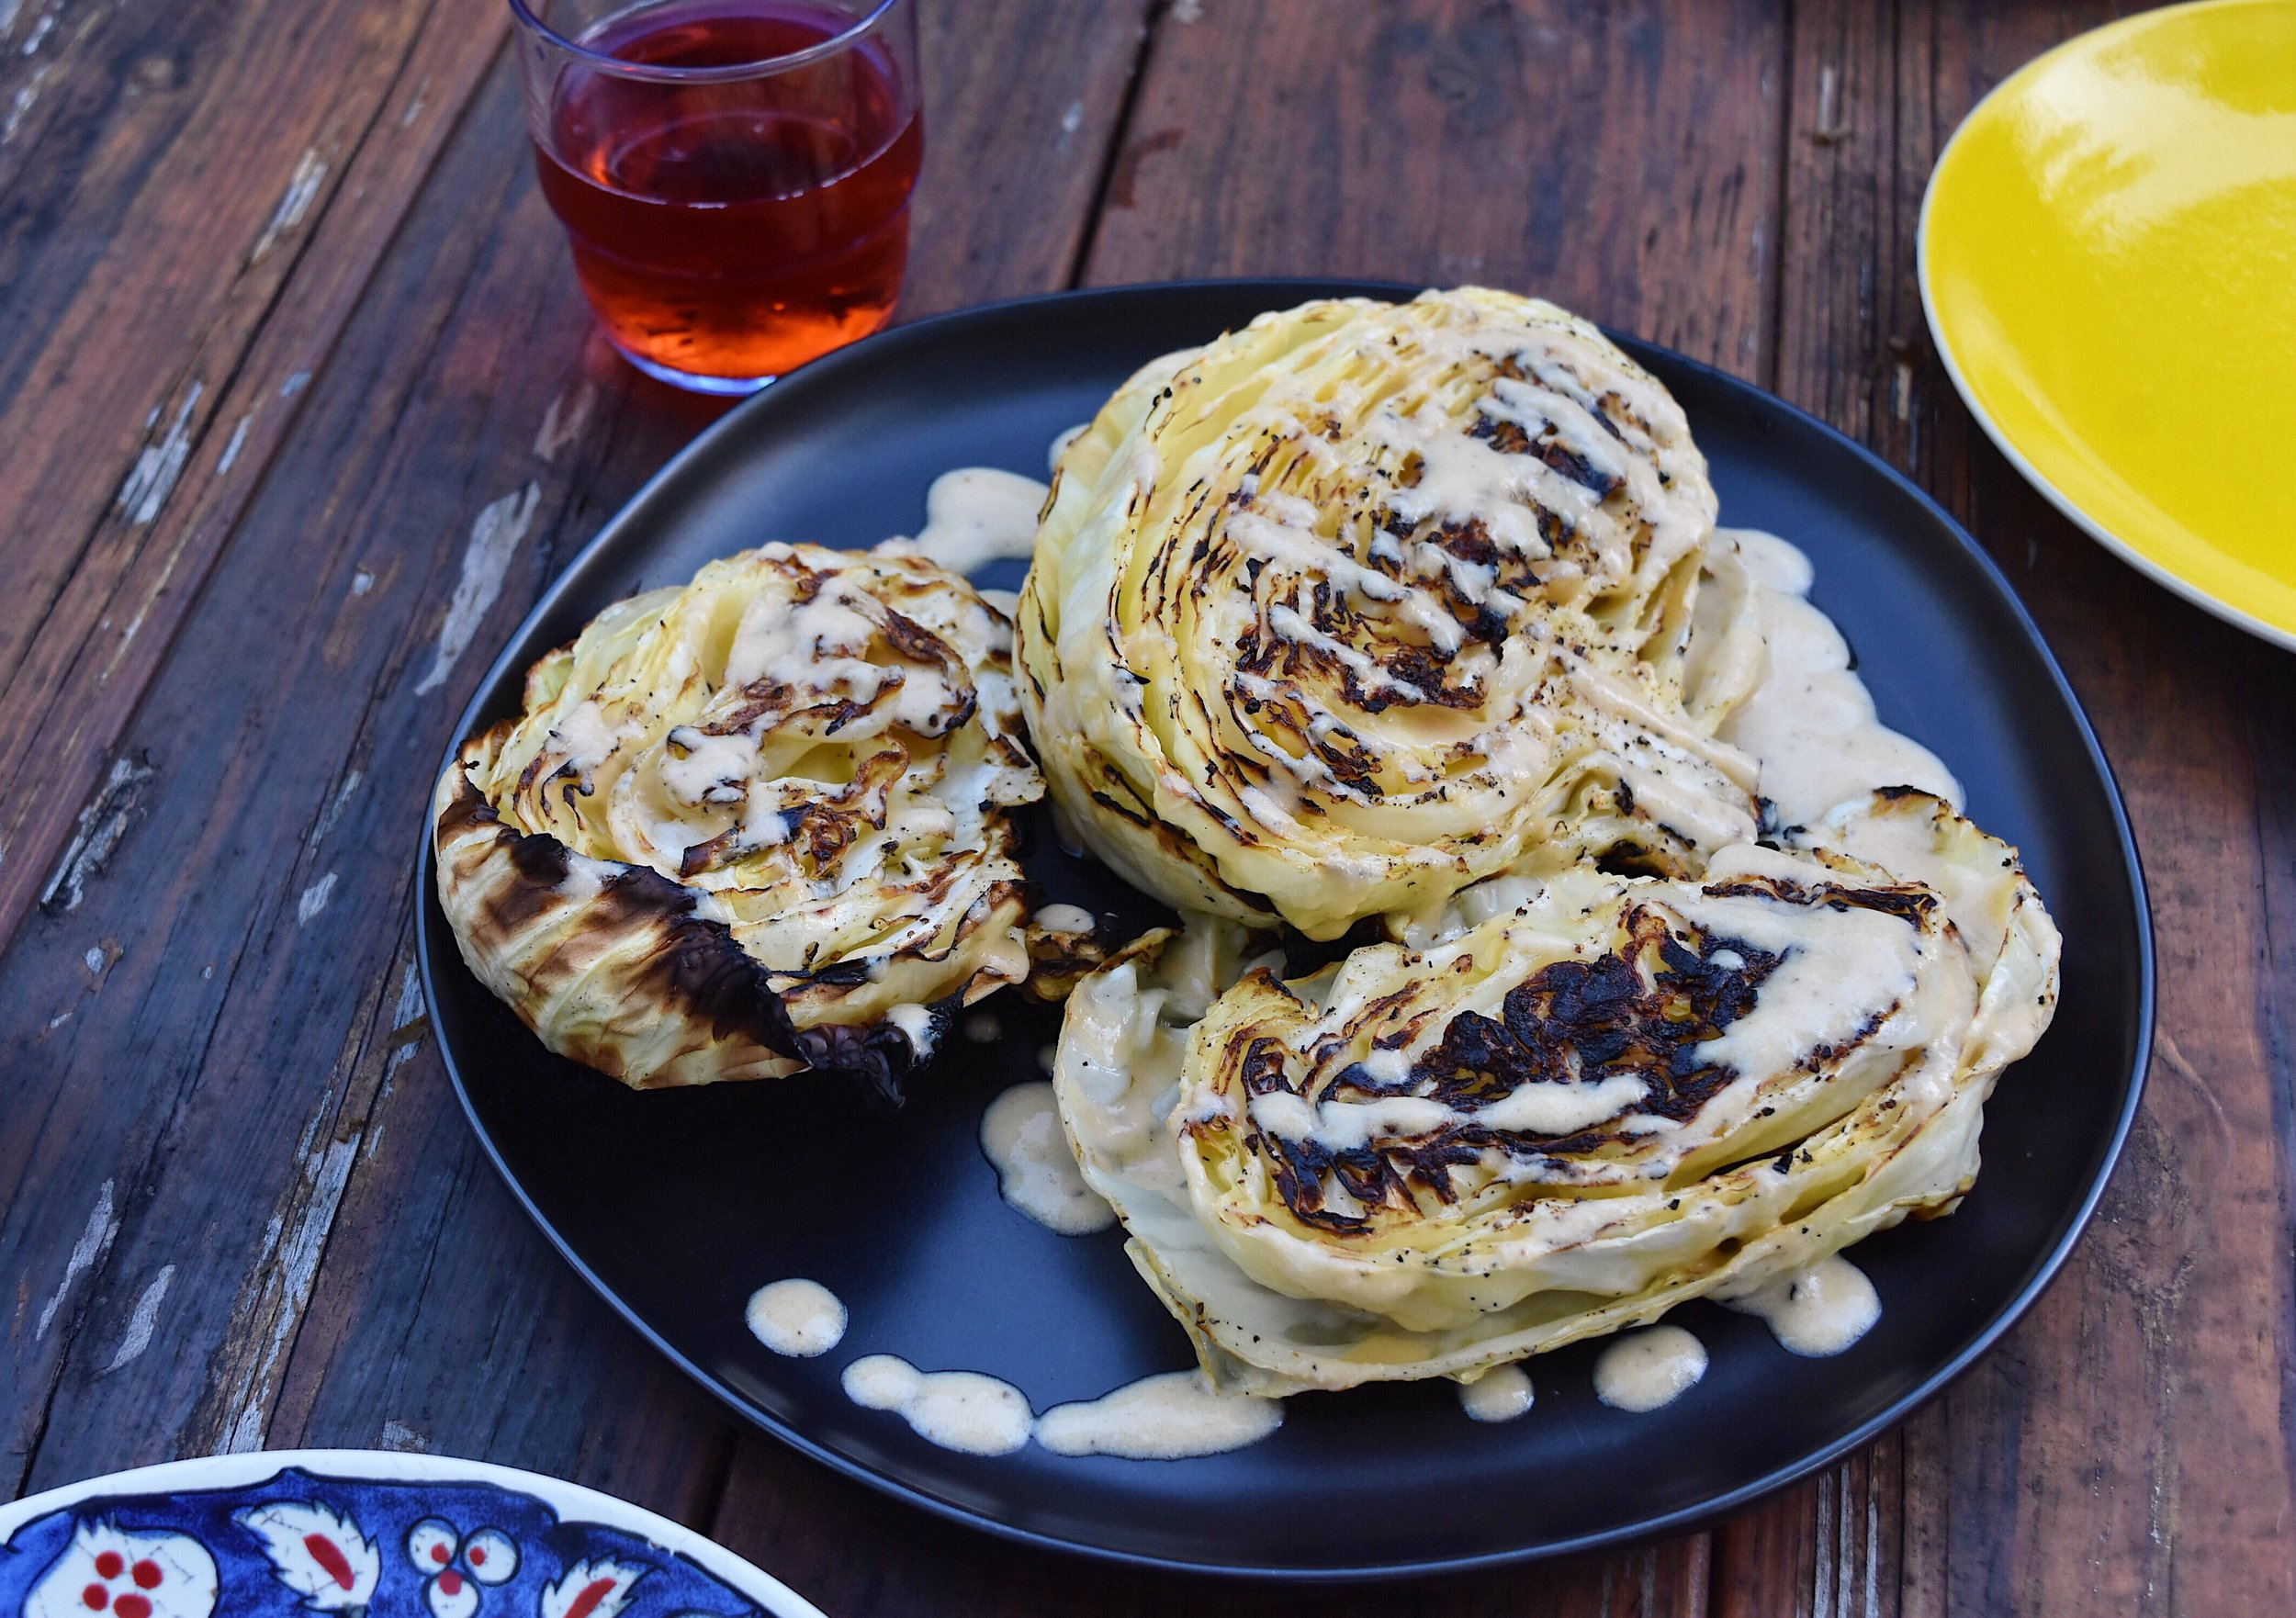 Charred Cabbage with Lemon-Chili Tahini The Full Table Blog 3.JPG